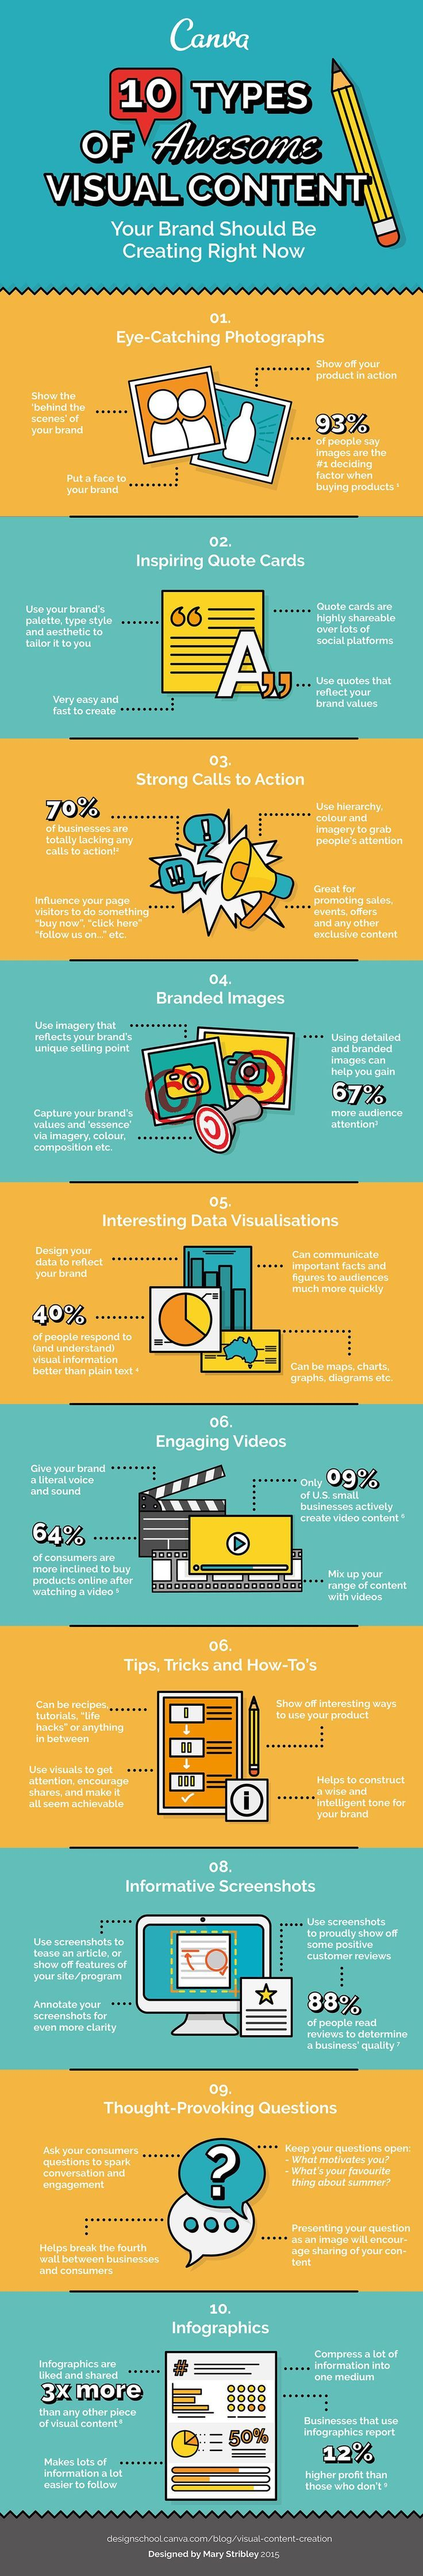 10 types of visual content you can create right now to get that attention you and your brand deserve. - #infographic #contentmarketing